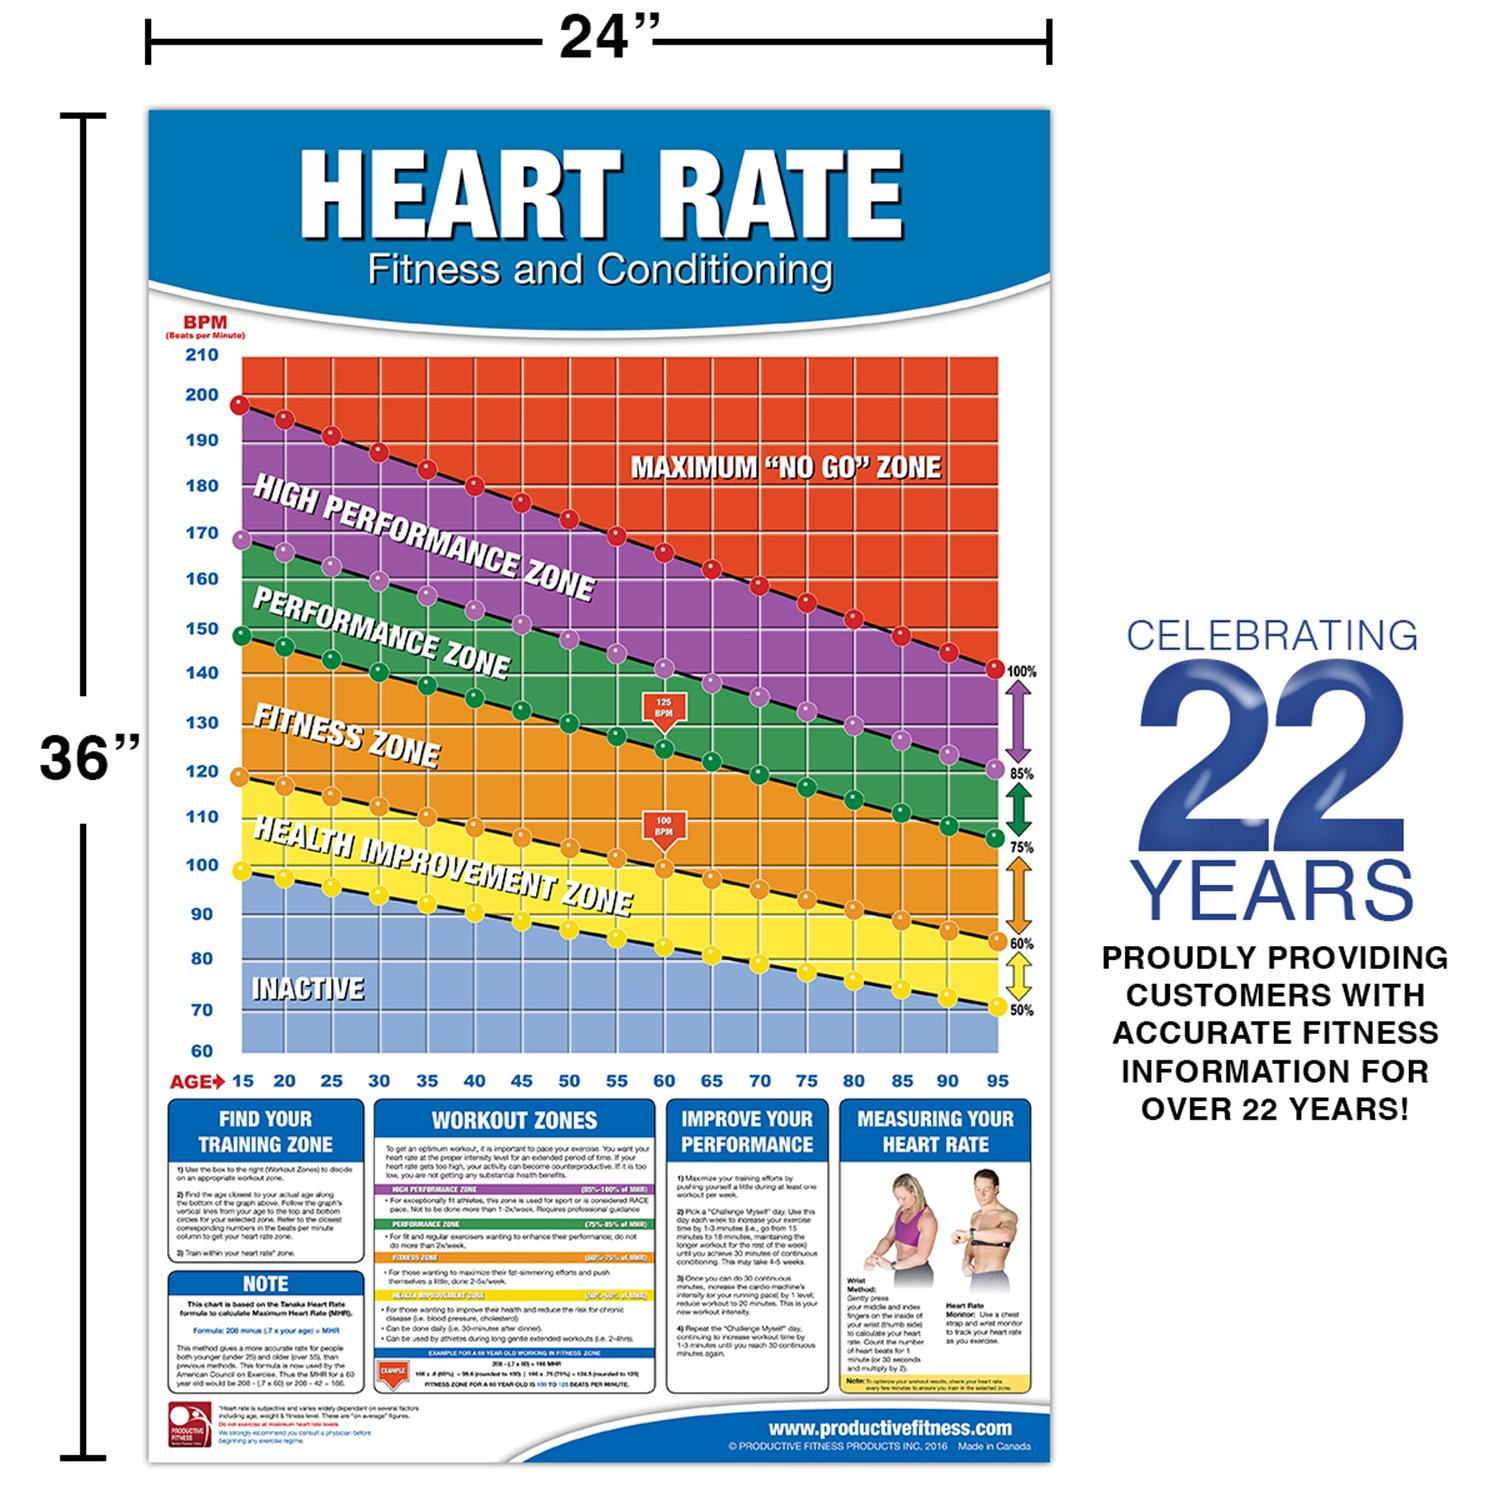 Fitness heart rate chartposter fitness heart rate poster training fitness heart rate chartposter fitness heart rate poster training zone chart workout zone maximum heart rate poster training by heart rate poster geenschuldenfo Images